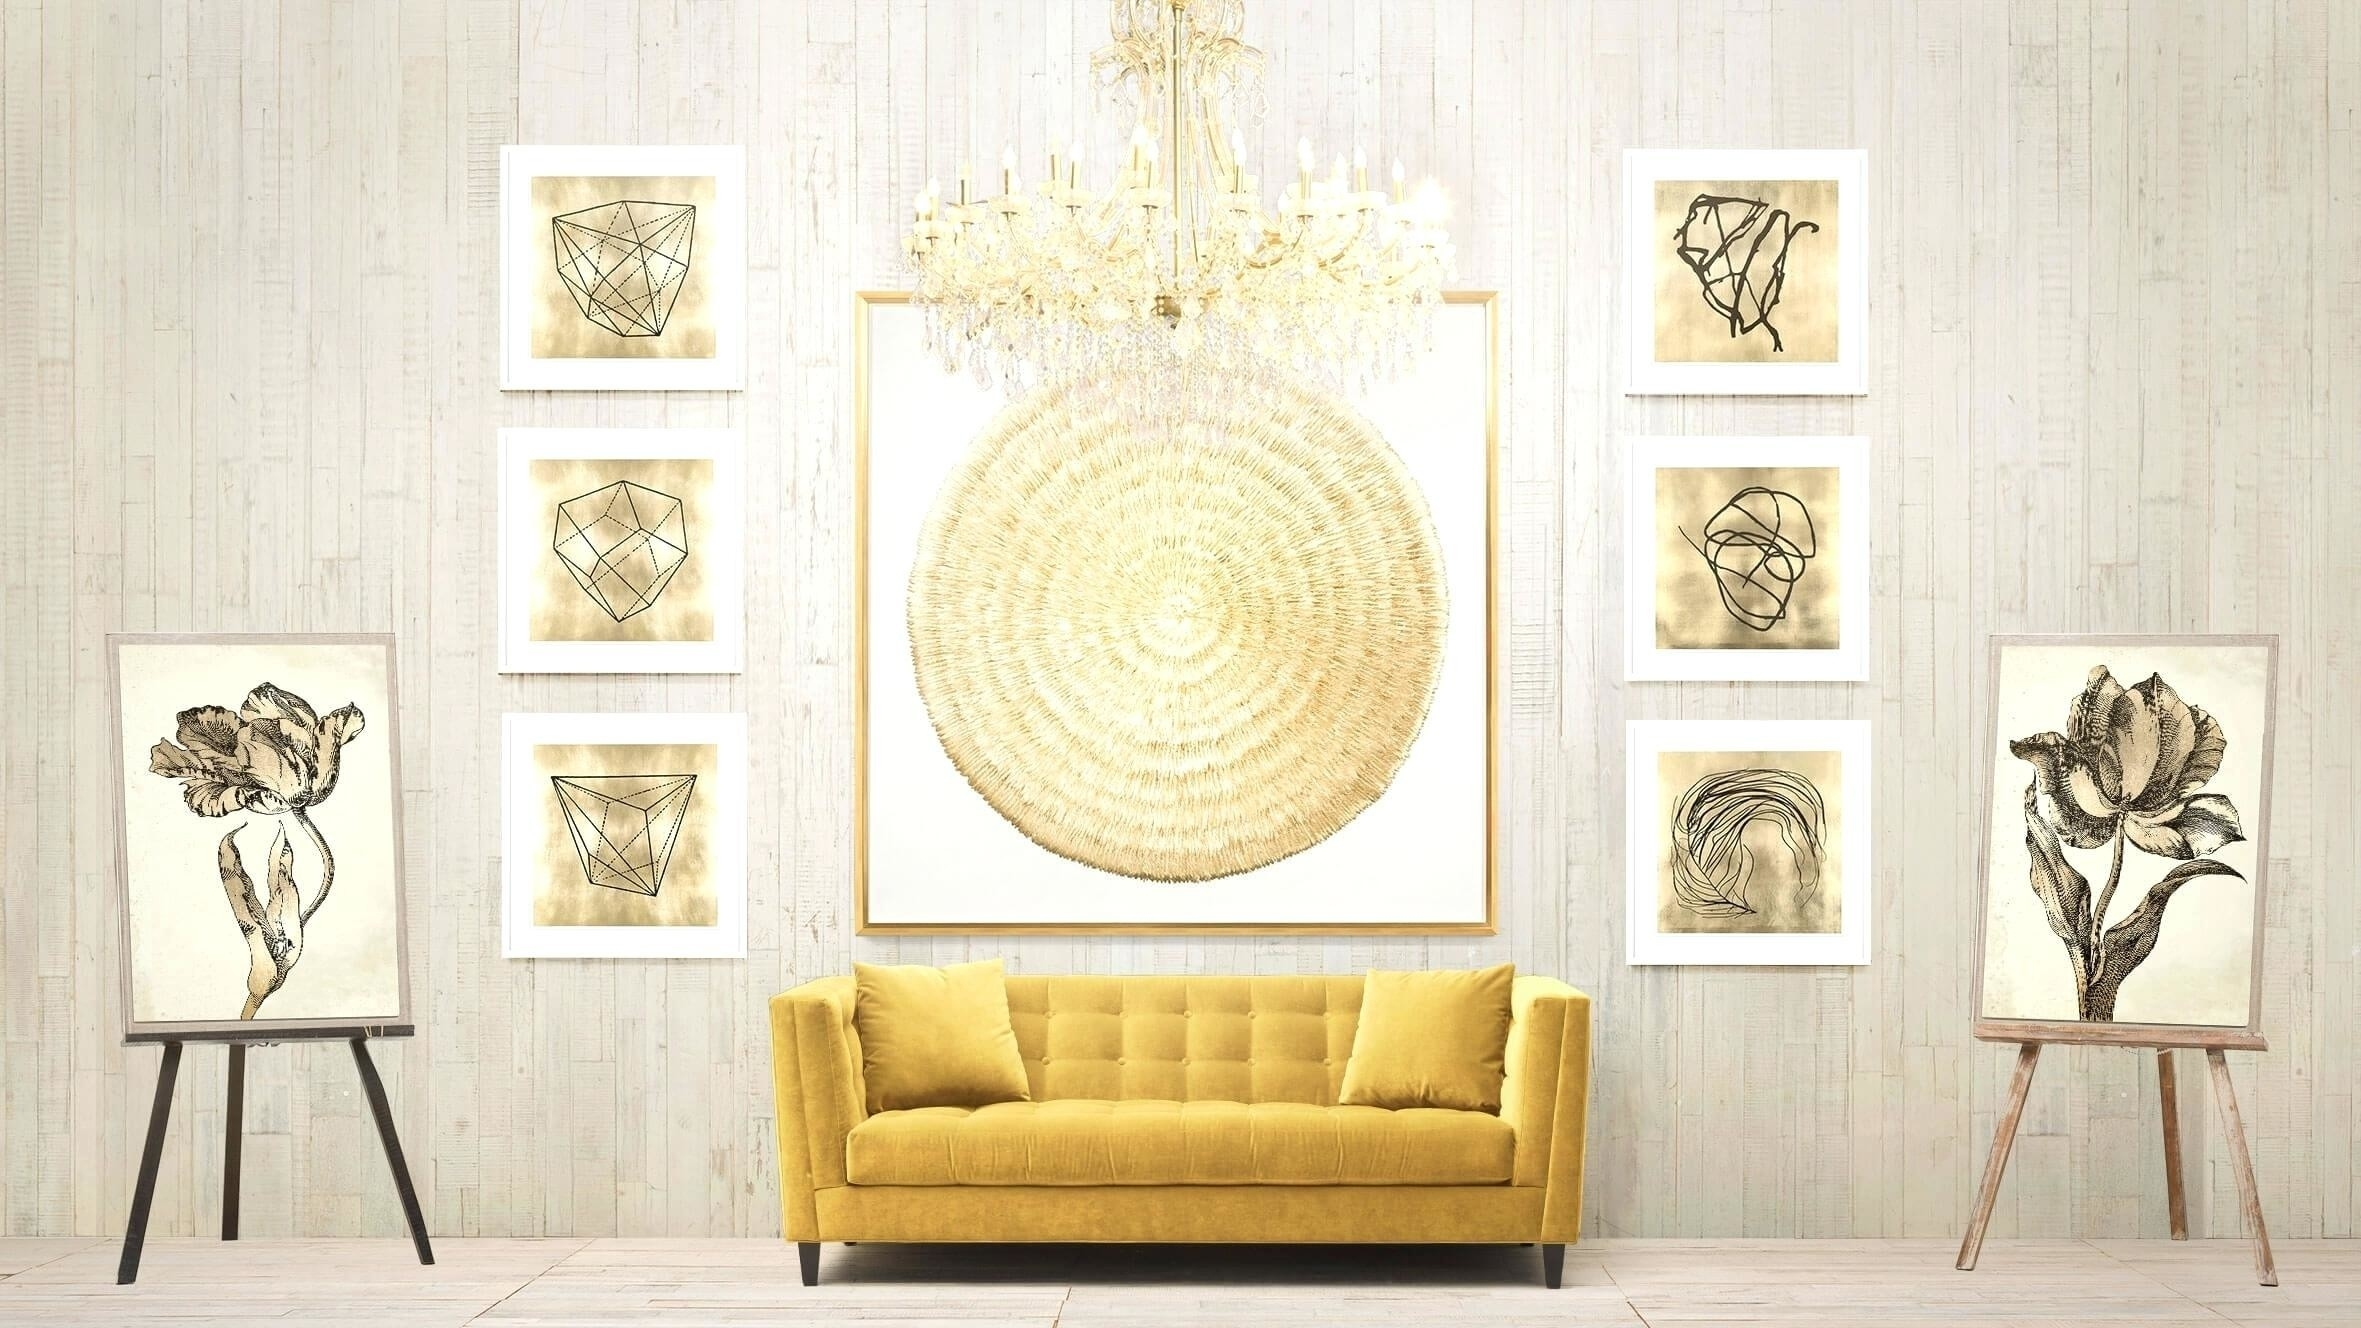 Best Wall Decor Contemporary – The Wall Art Decorations With Regard To 2018 Gold Wall Accents (View 3 of 15)